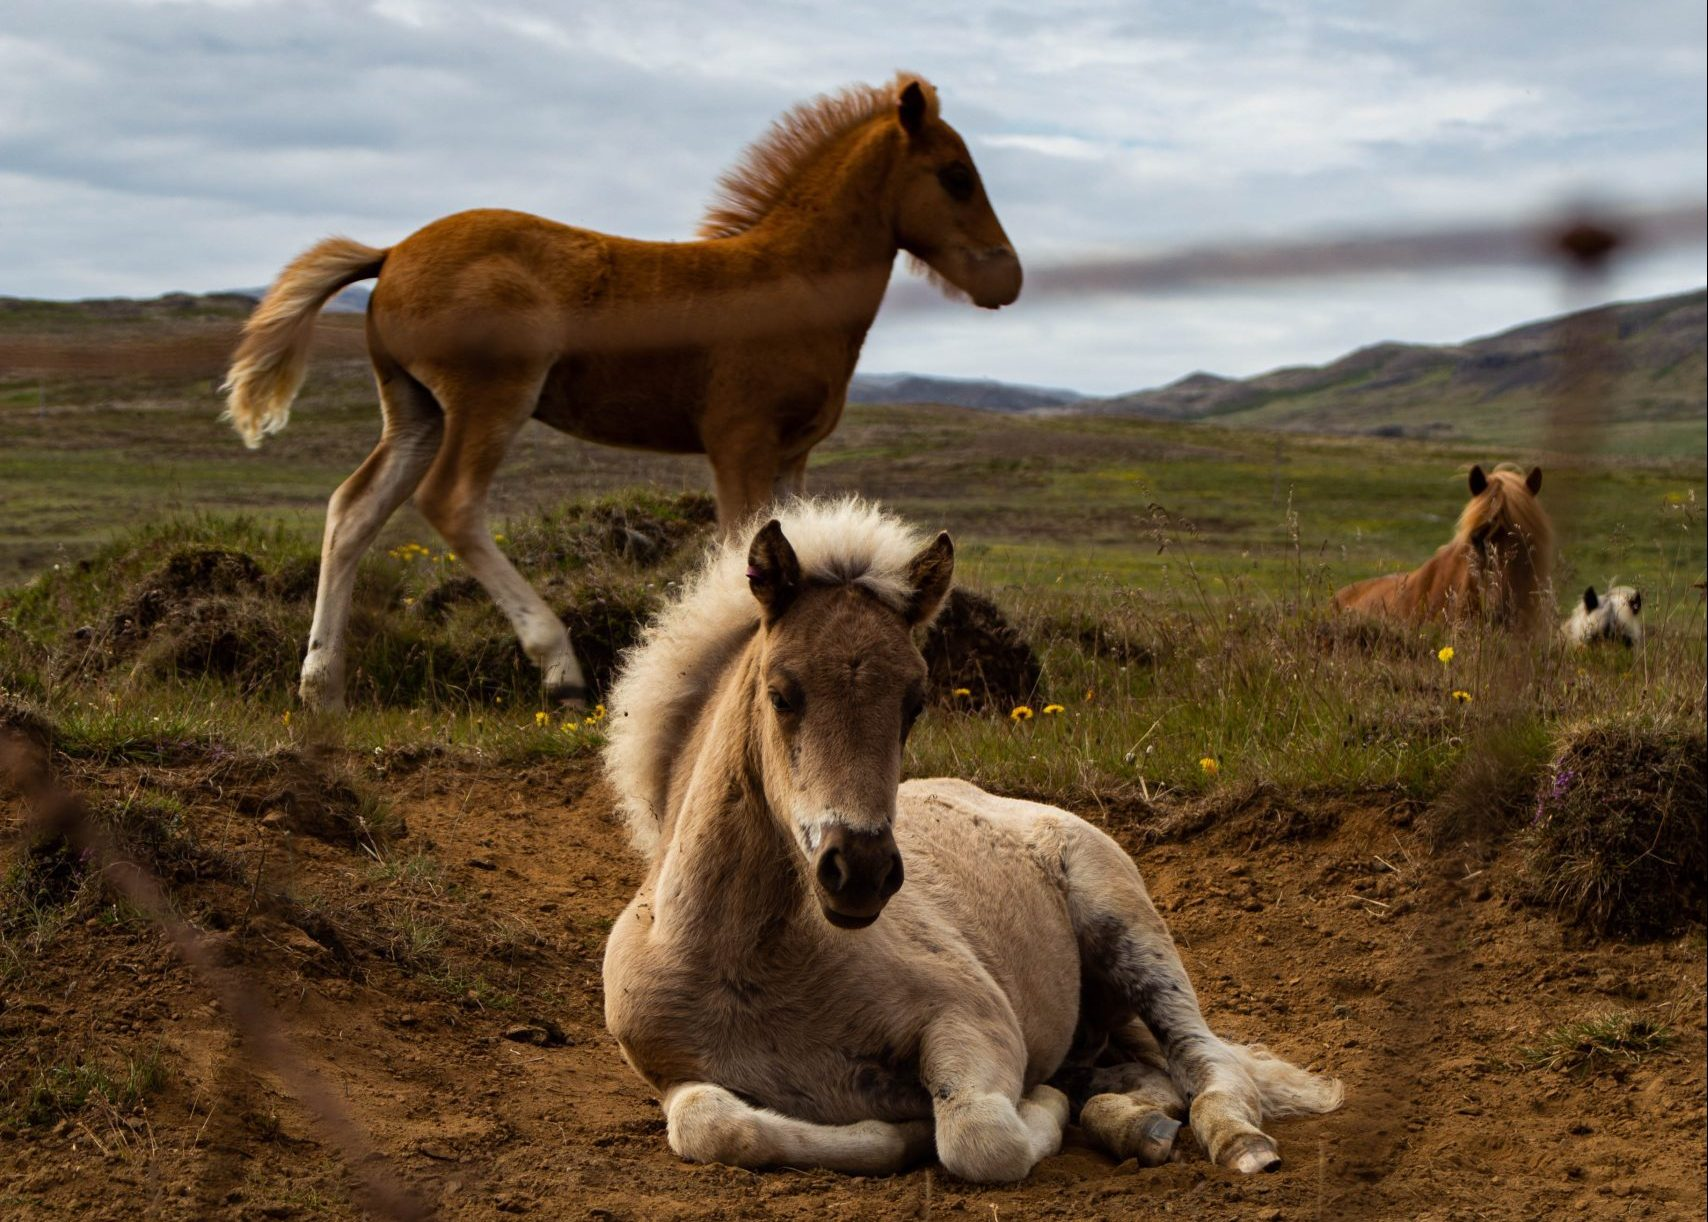 White and brown horses close up photography